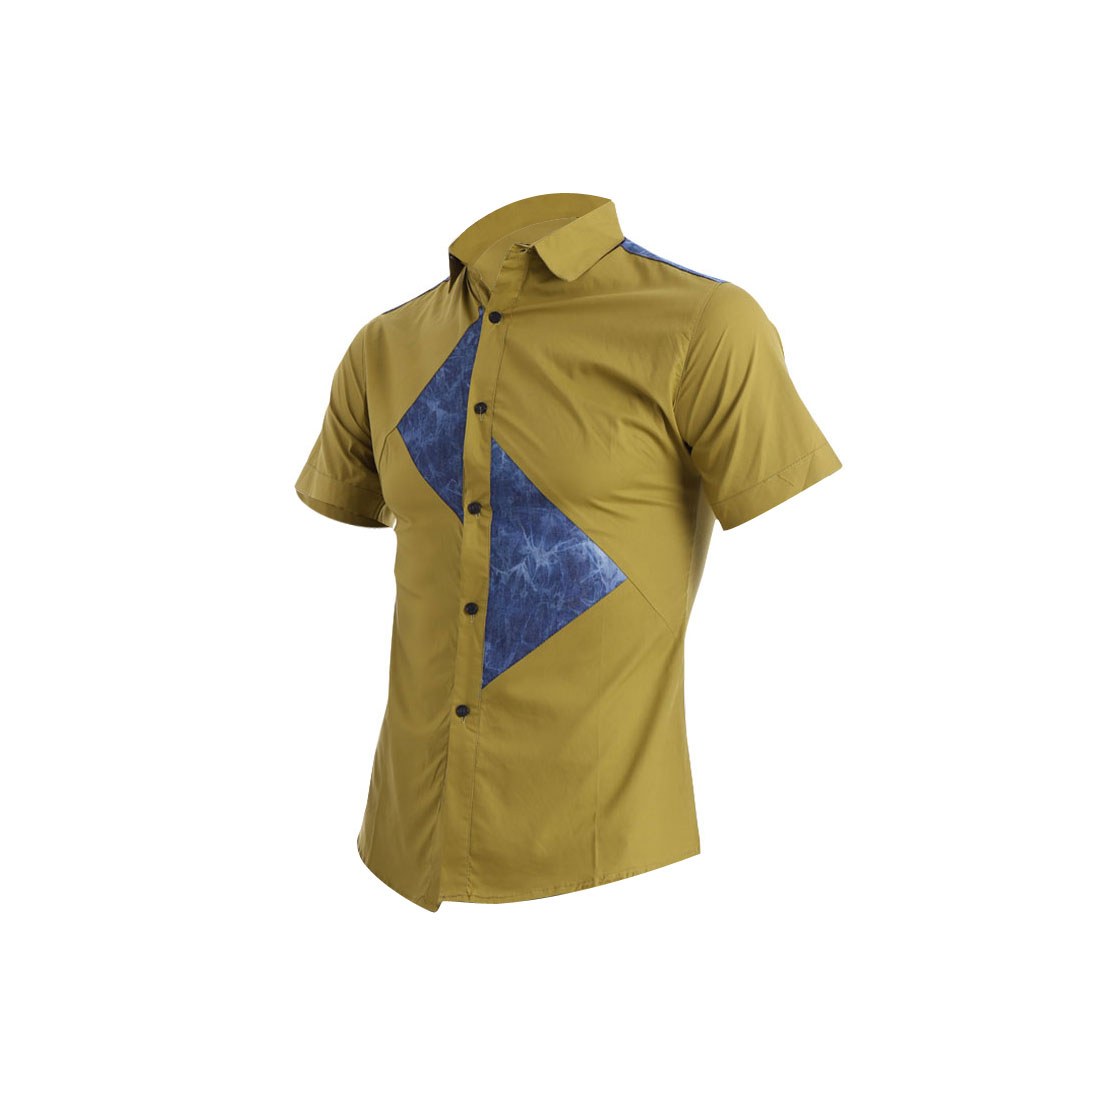 Man Short Sleeve Symmetry Point Collar Contrast Color Shirt Dark Yellow S